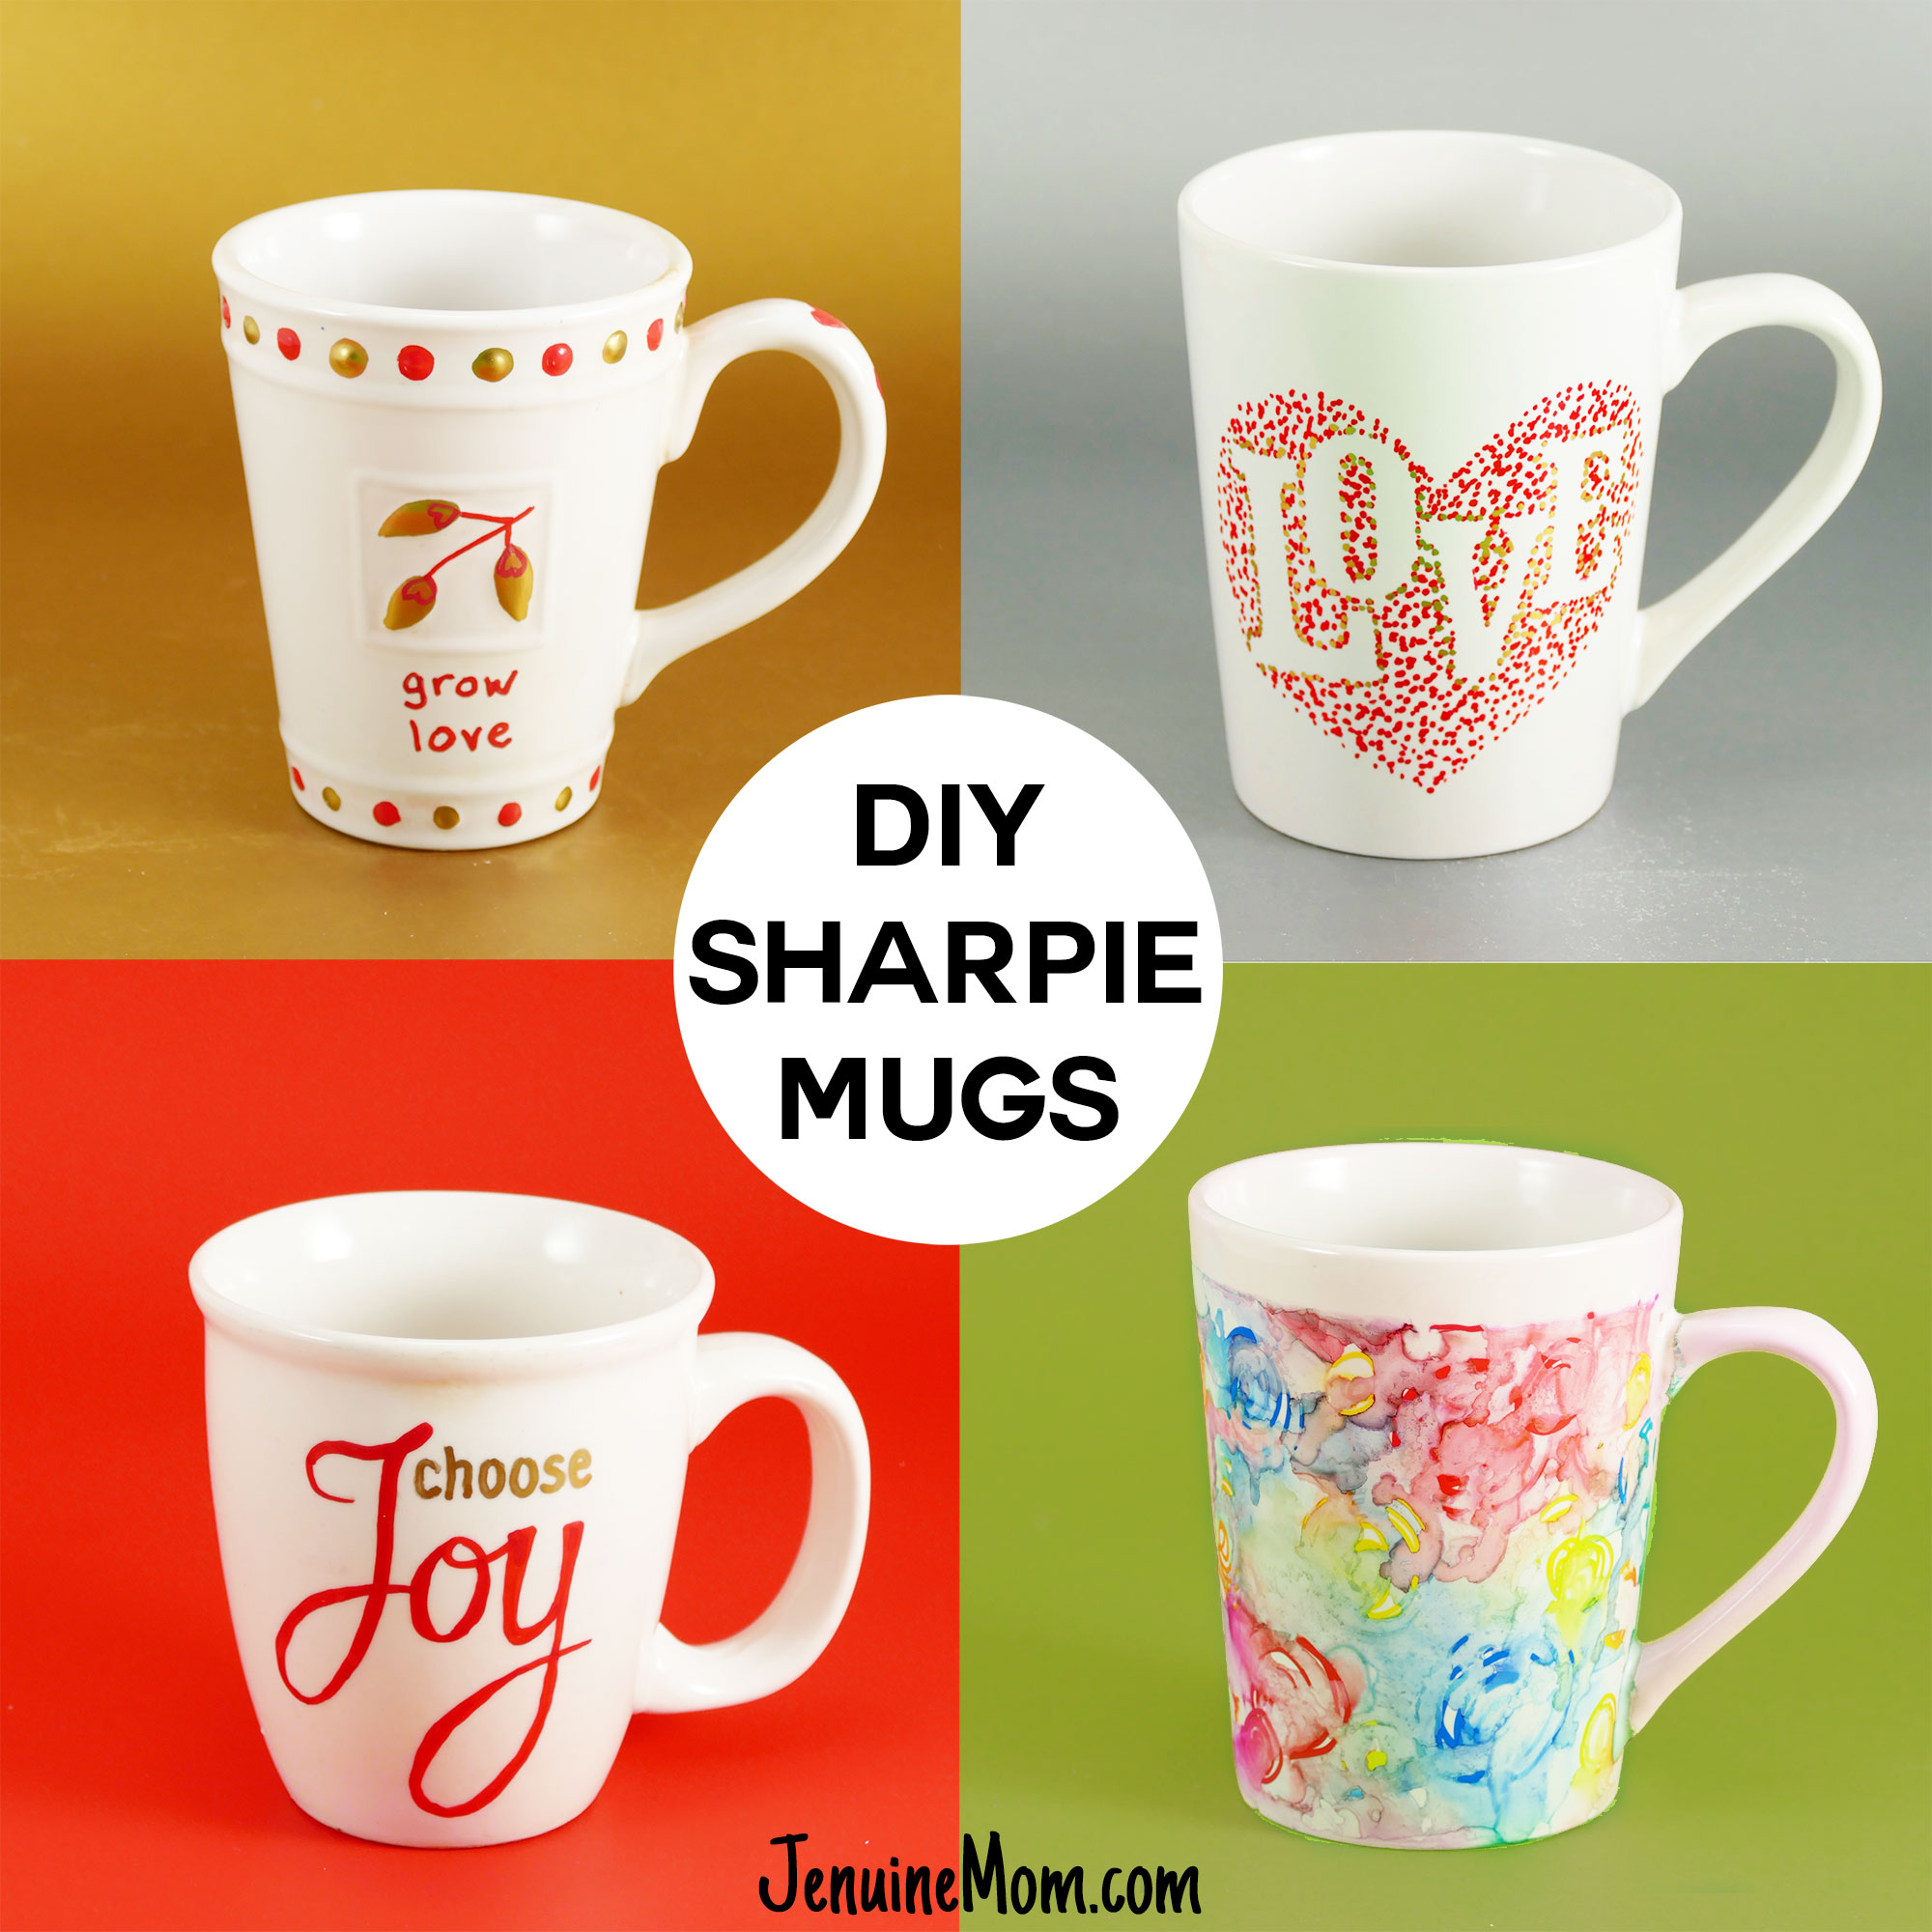 Splendiferous Easy Personalized Gifts Diy Sharpie Mugs Diy Sharpie Mugs Easy Personalized Gifts Jennifer Maker Color Your Own Coffee Mug furniture Color Your Own Coffee Mug